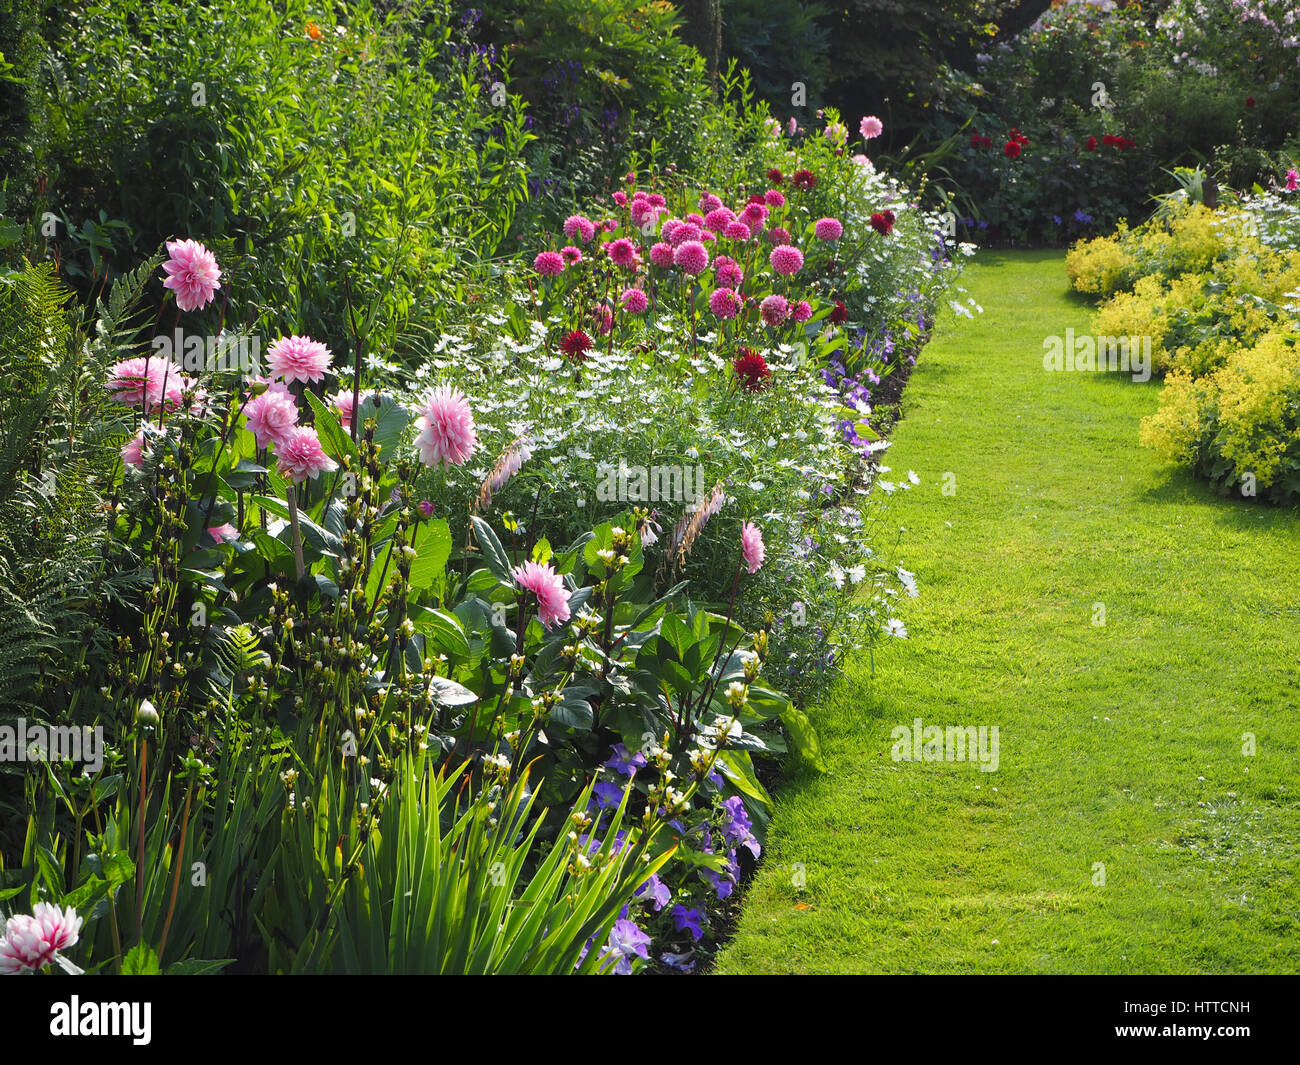 Chenies Manor Sunken garden in July. Vivid pink dahlias, ornamental pond, foliage , lawn and various shades of greenery - Stock Image